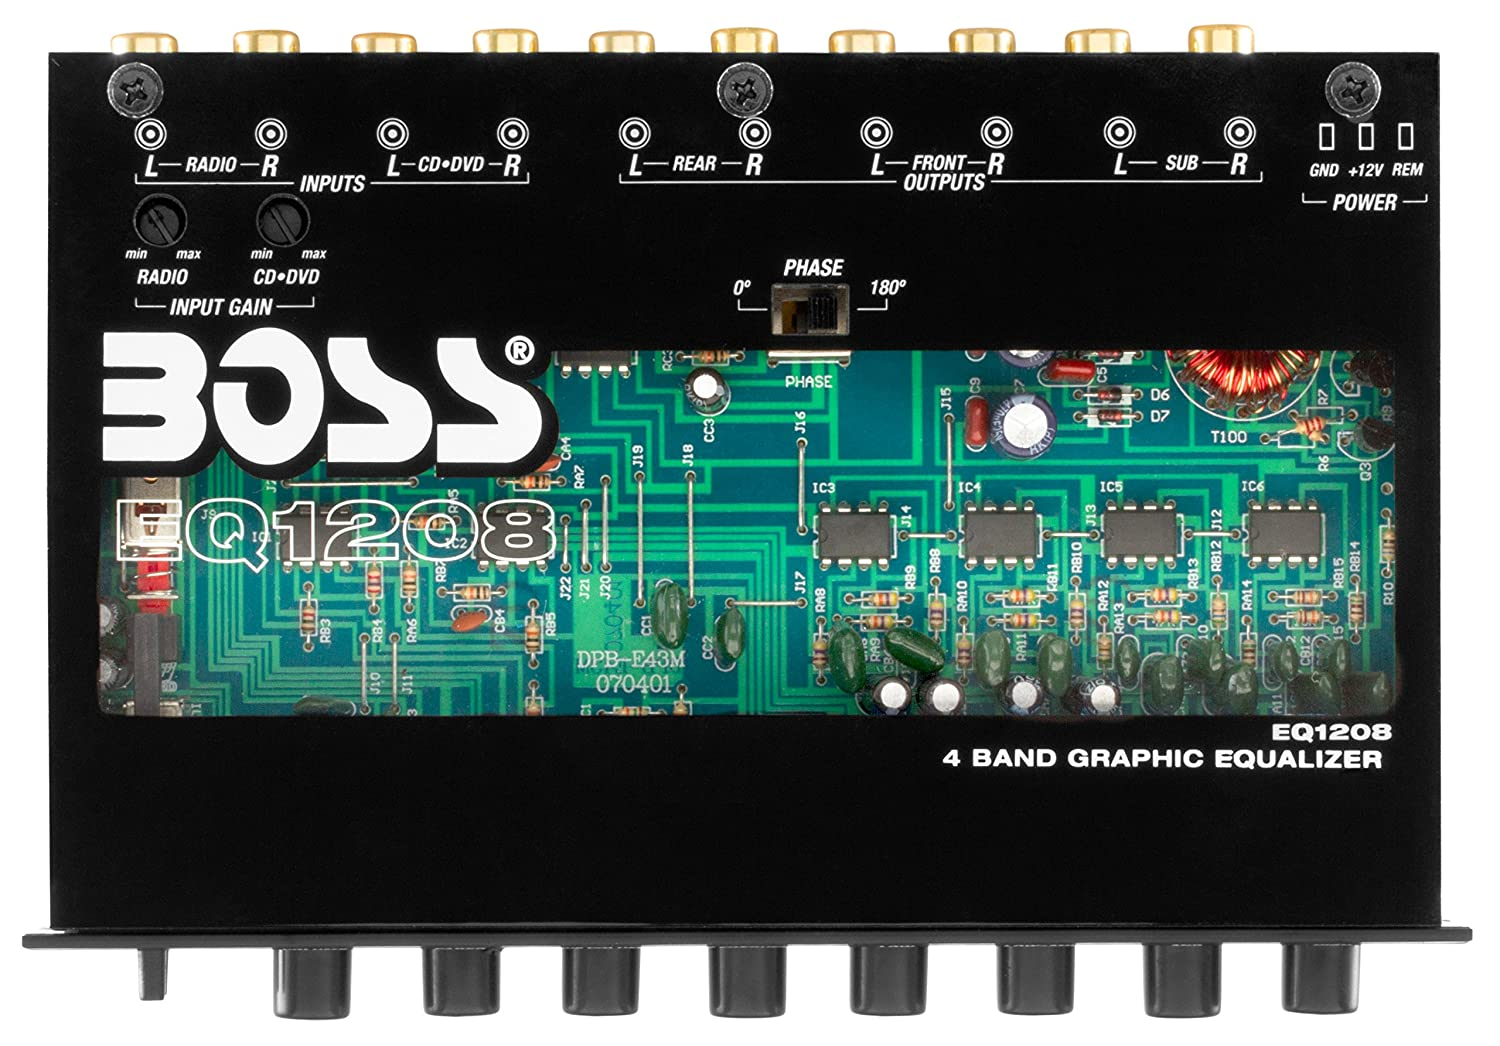 Boss Eq1208 4 Band Pre Amp Equalizer With Subwoofer Output Master Low Noise Amplifier Circuit Sound Control Garden Outdoors